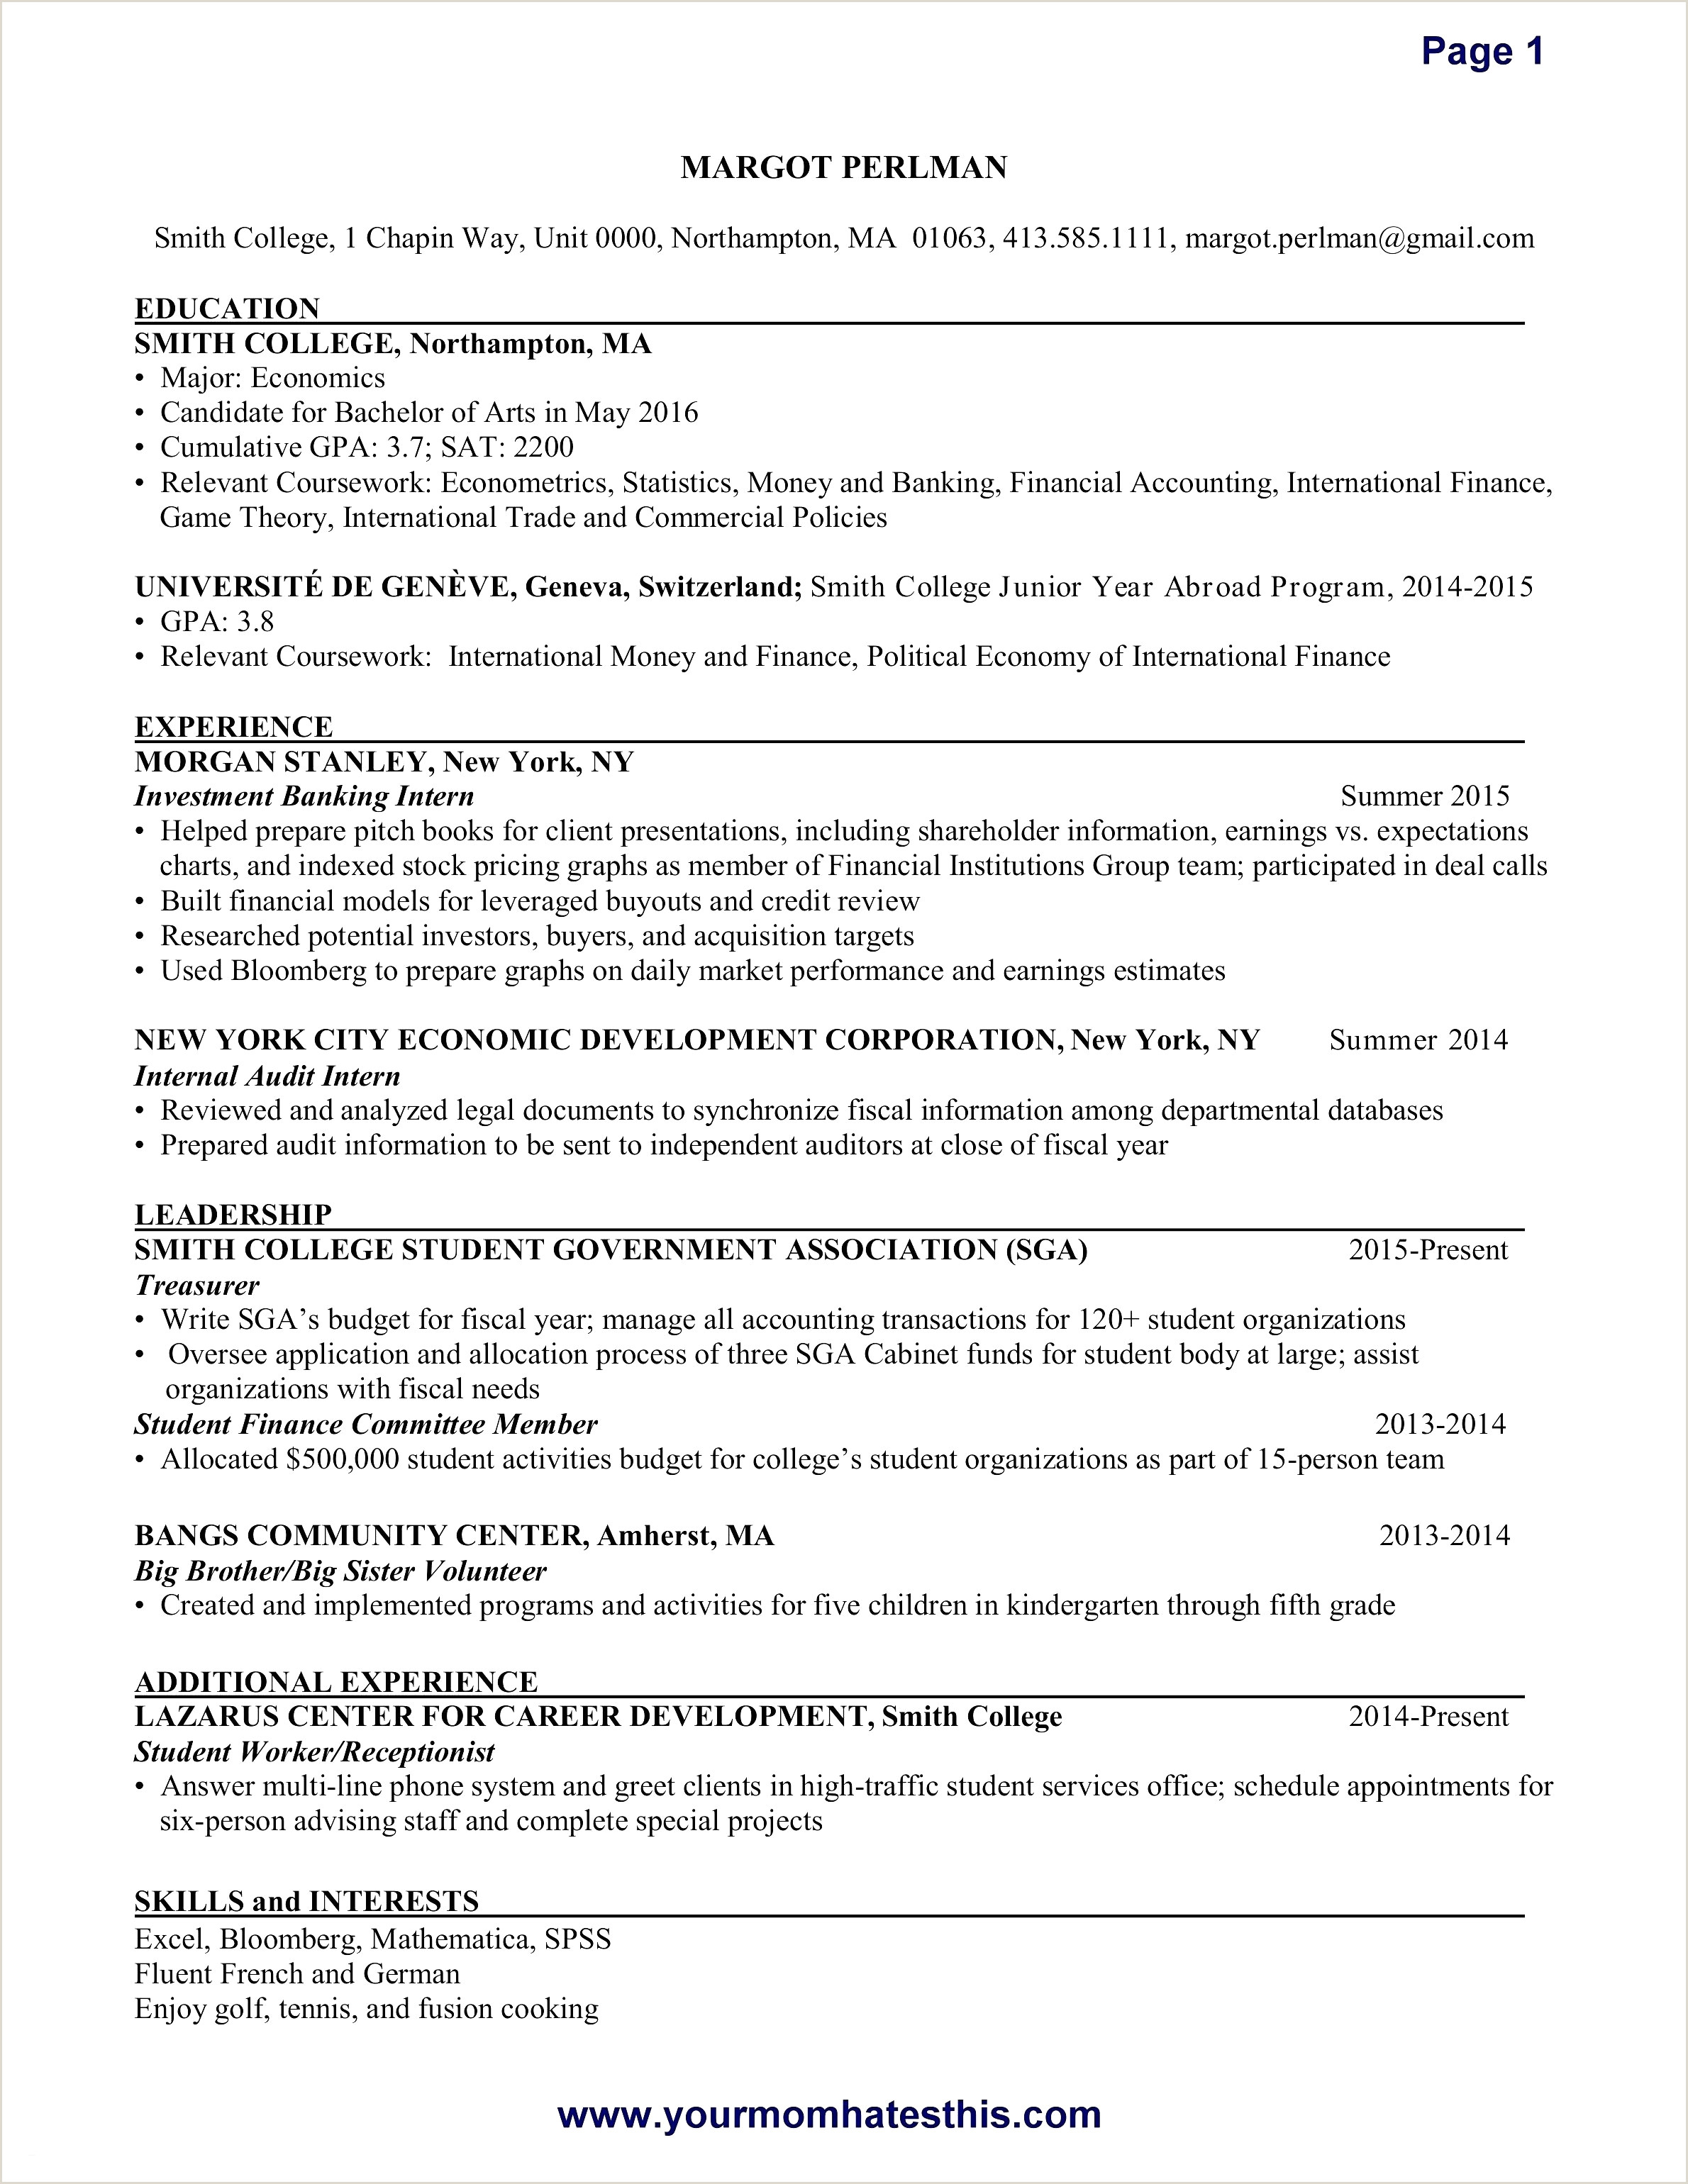 10 experience section of resume